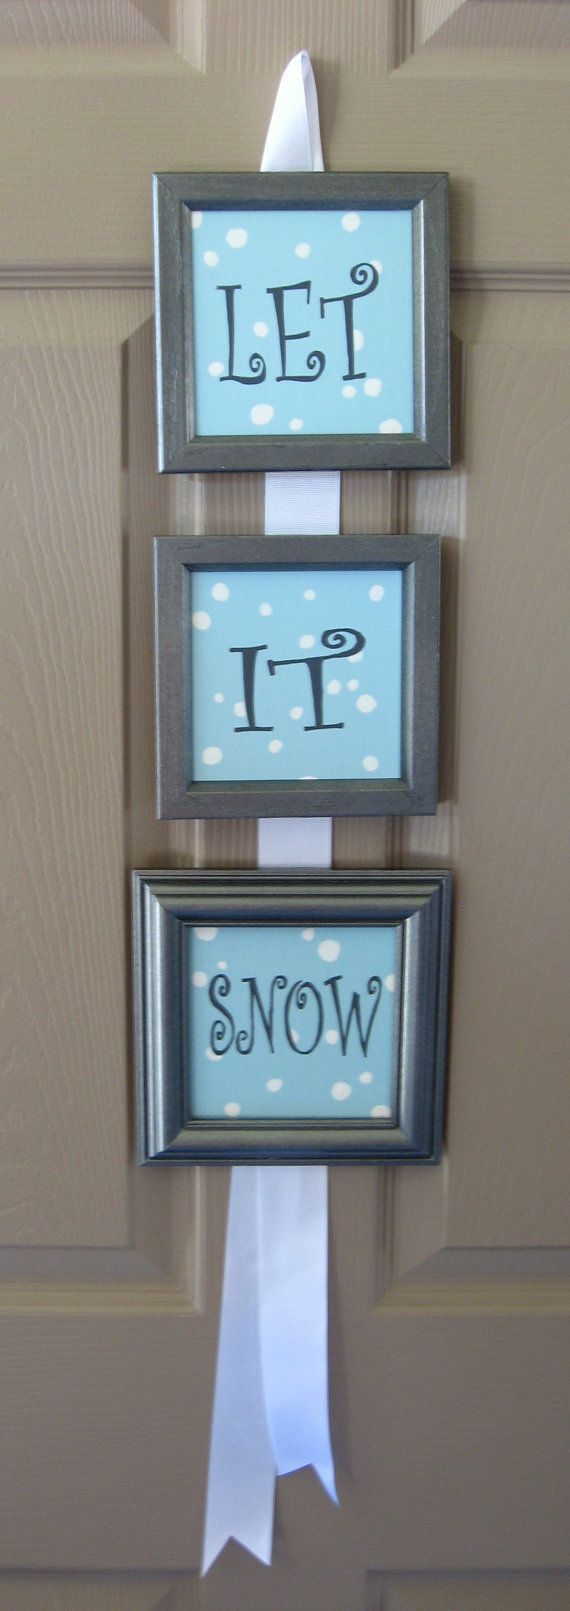 Let it snow - Could probably get materials from dollar store? Cricut project!!!